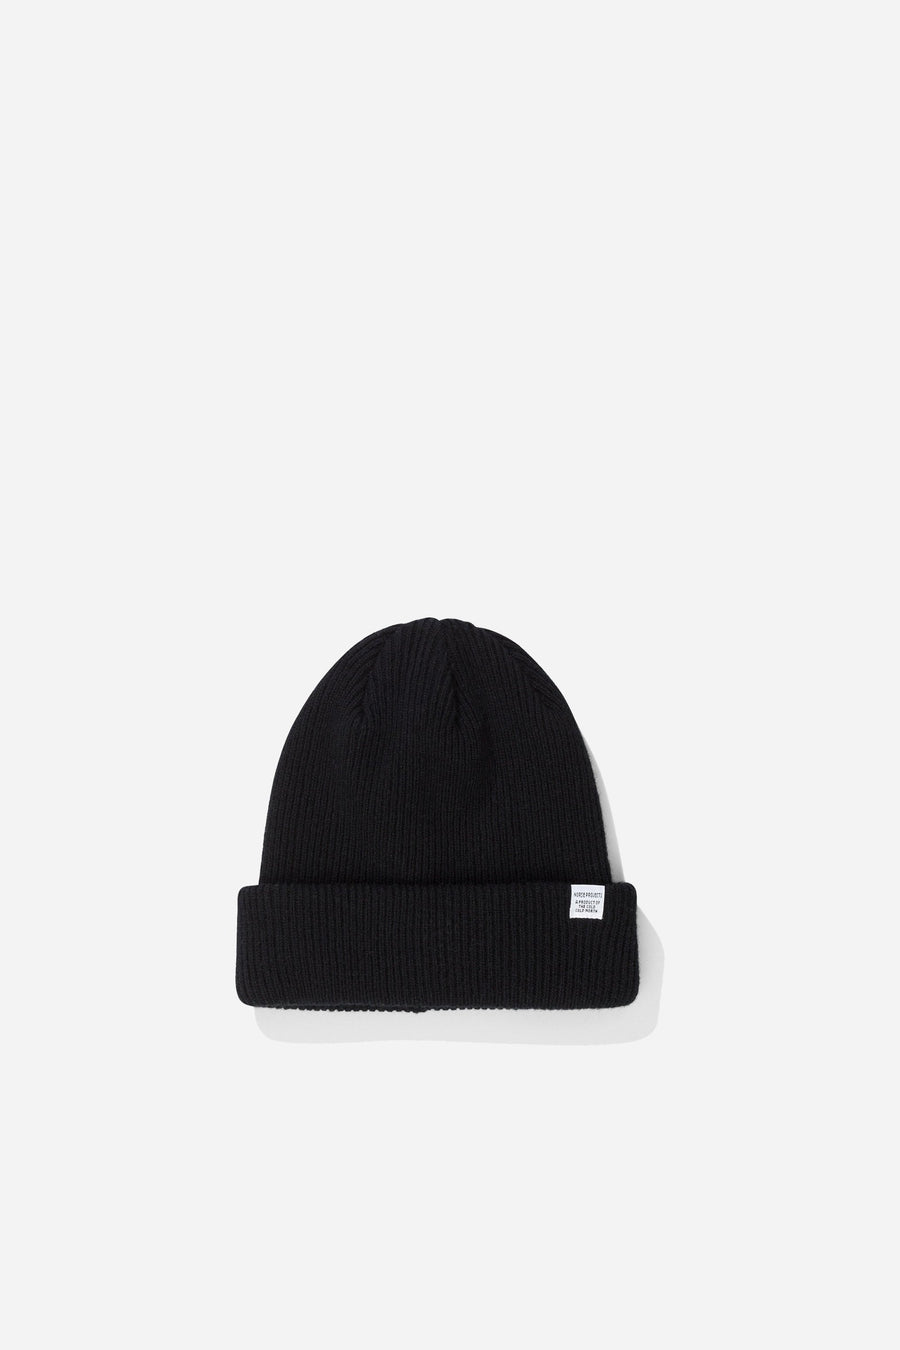 NORSE PROJECTS Norse Beanie Black | HAVN